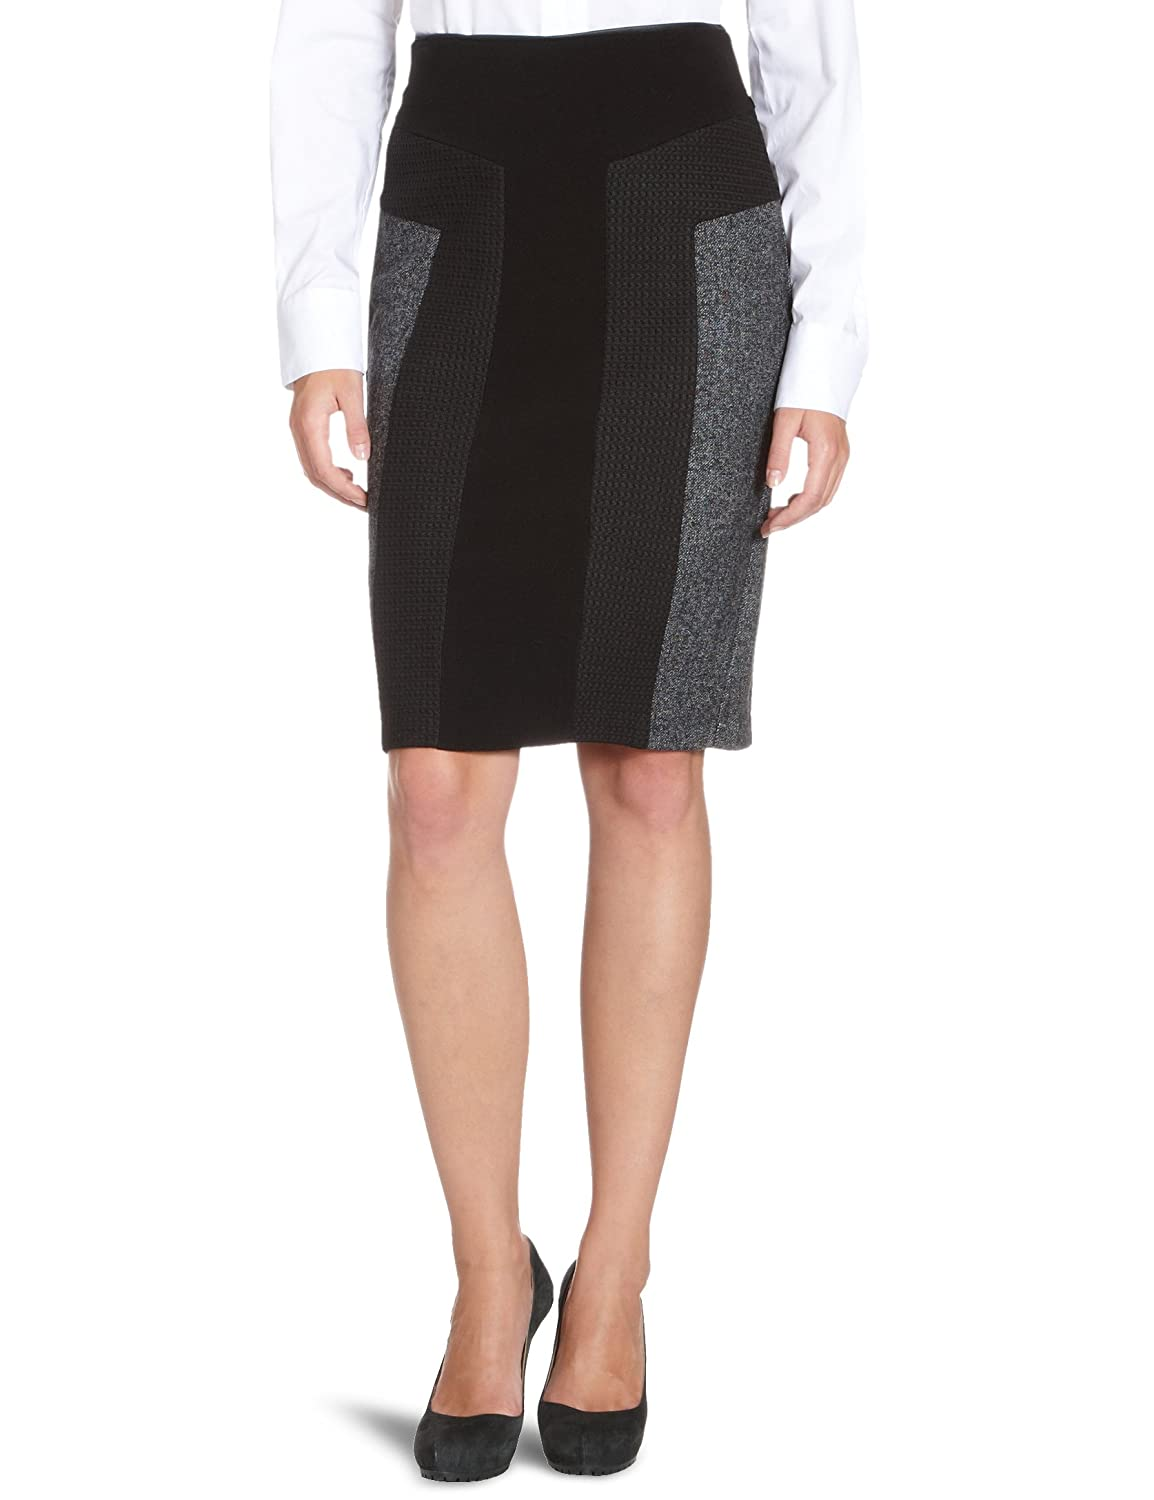 VERO MODA Women's Skirt